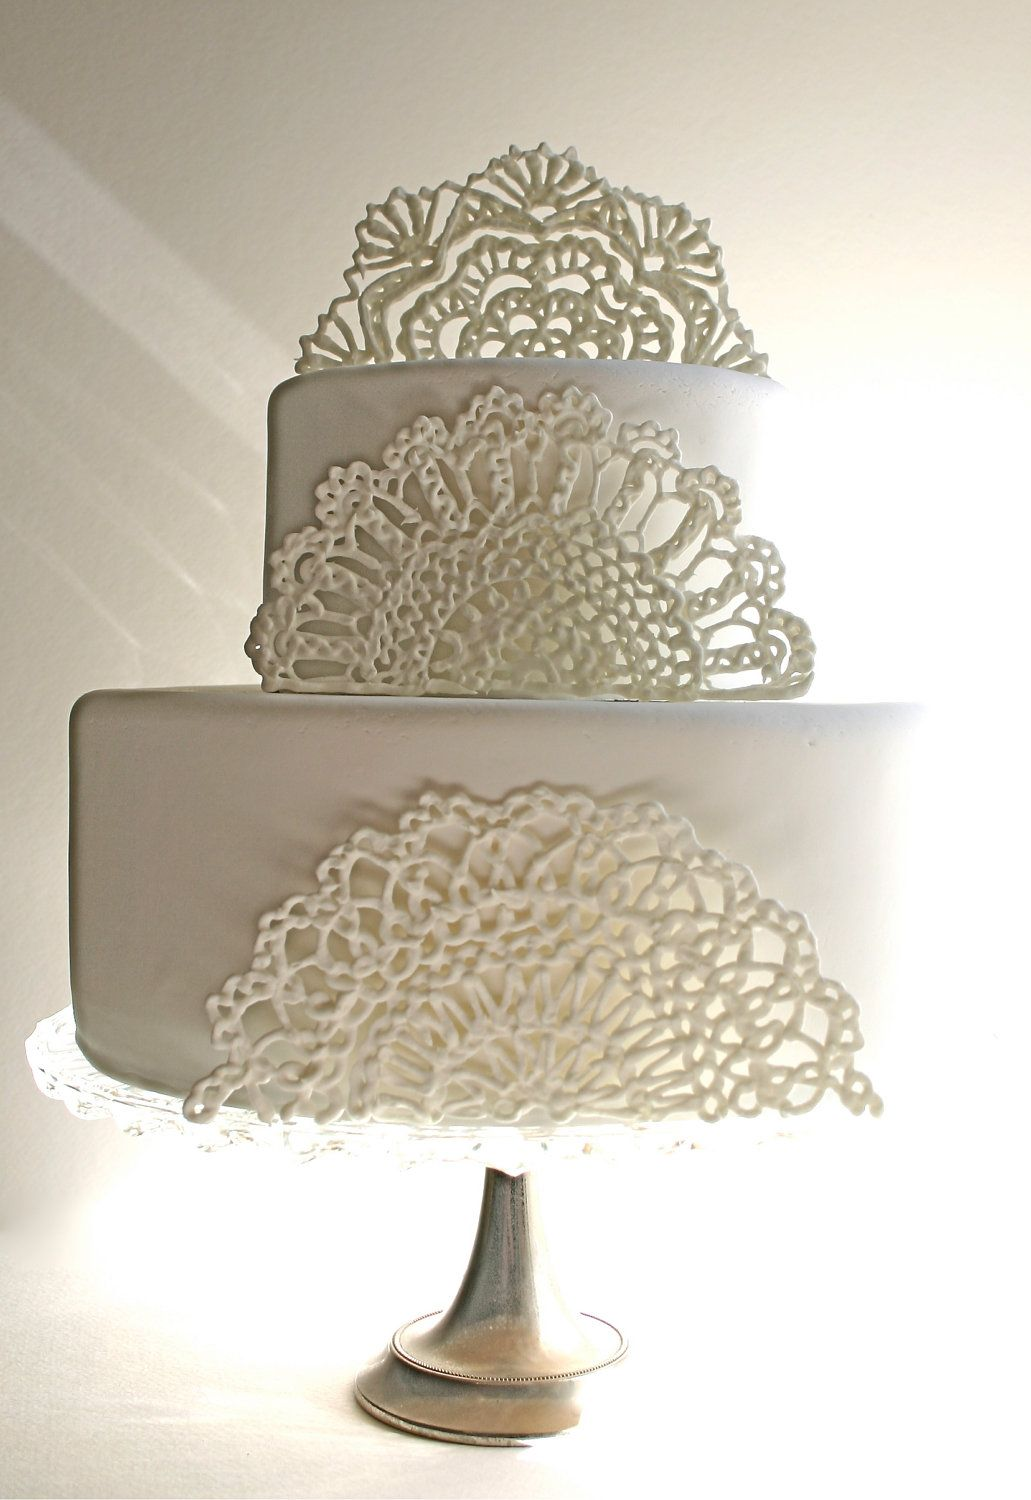 Pin by Electra Myers on The cake is a LIE! | Sugar lace ...